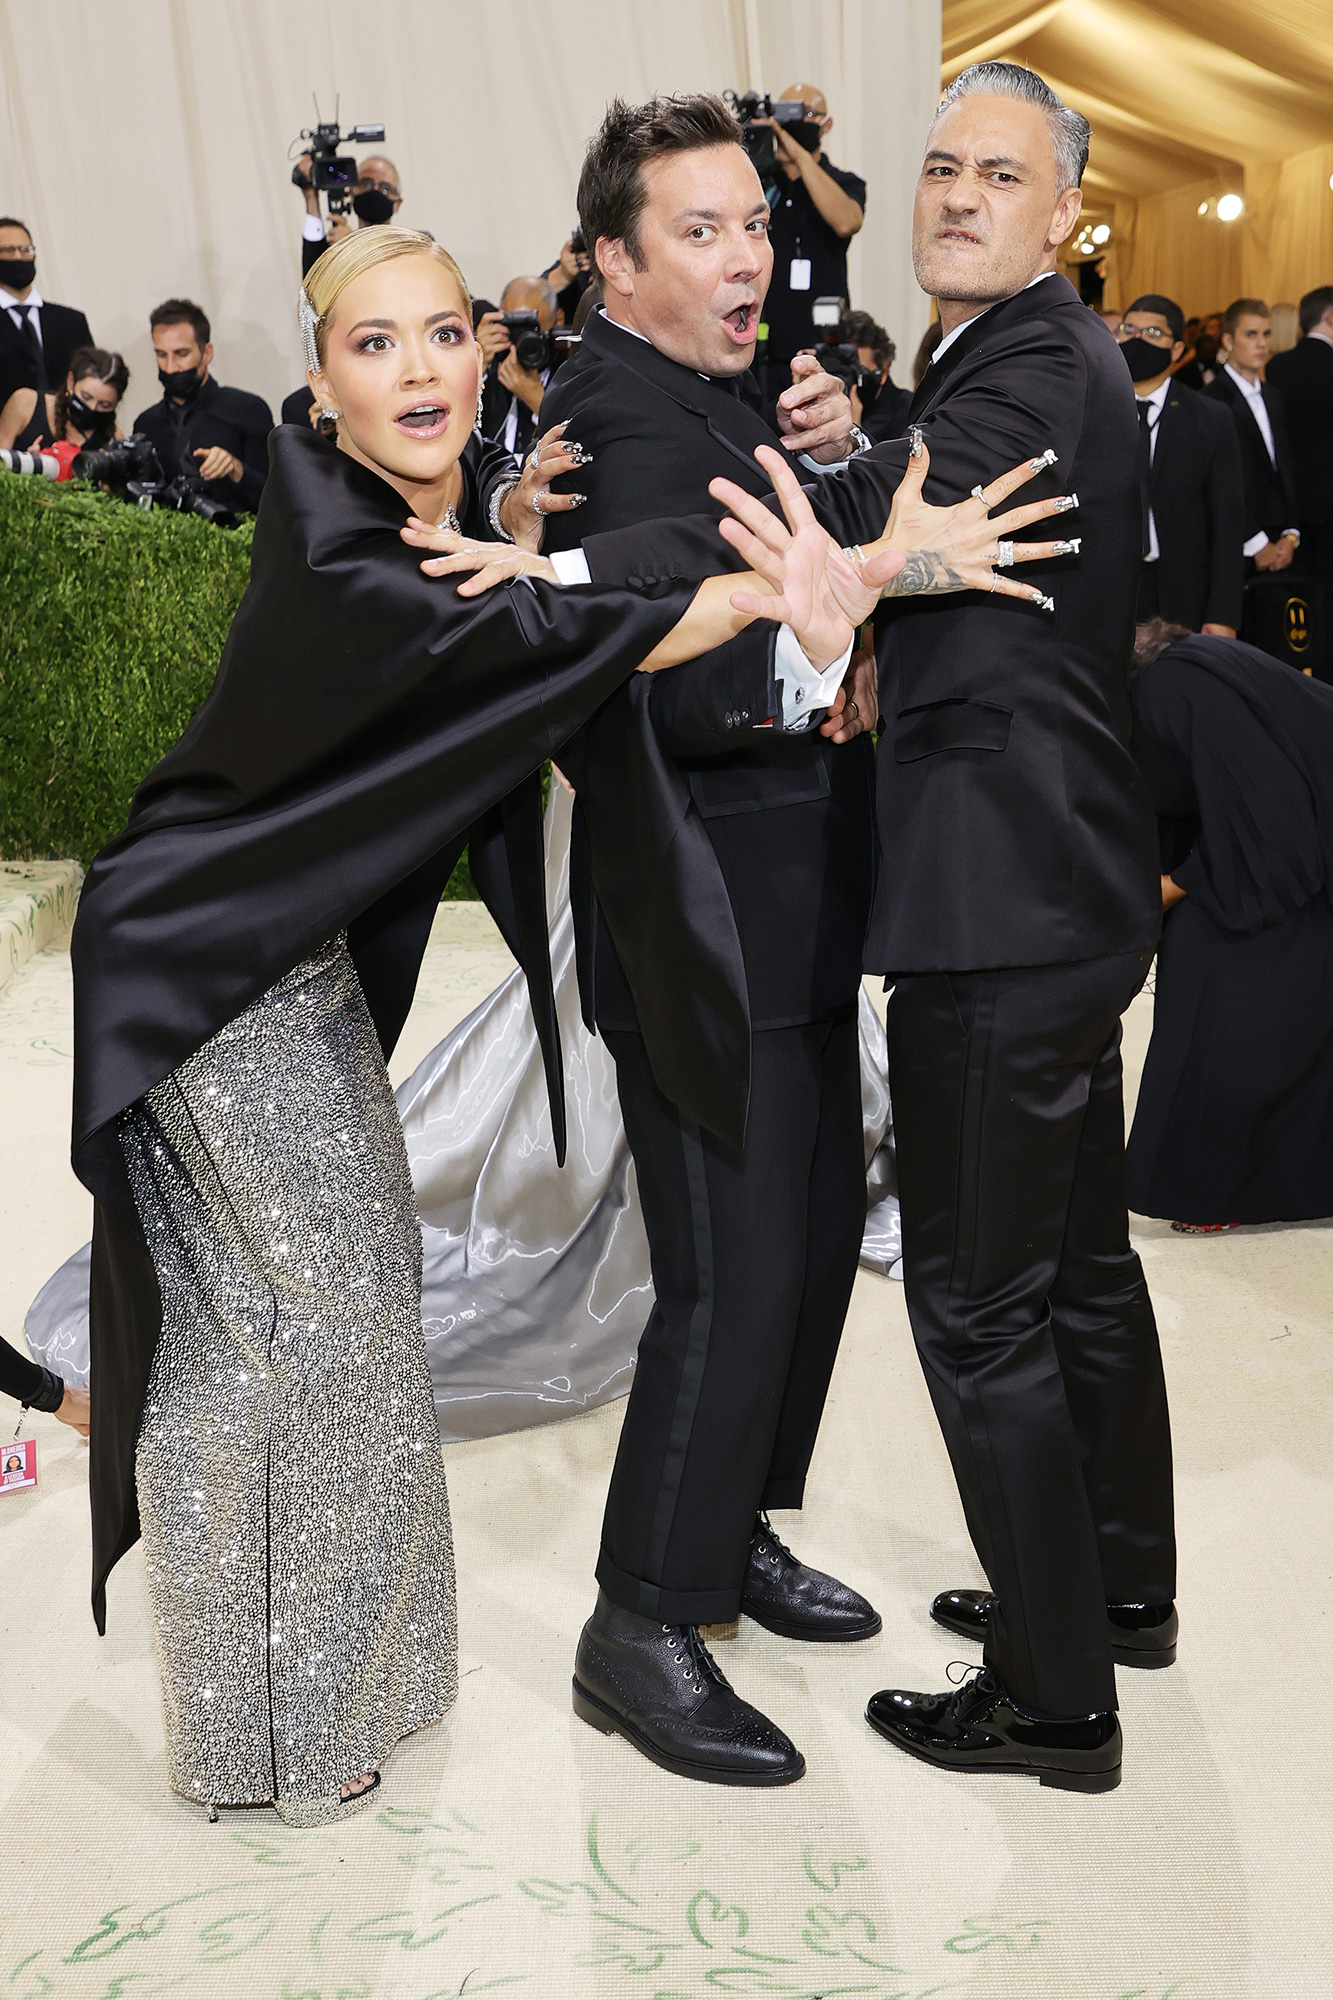 Rita Ora, Jimmy Fallon, and Taika Waititi attend The 2021 Met Gala Celebrating In America: A Lexicon Of Fashion at Metropolitan Museum of Art on September 13, 2021 in New York City.